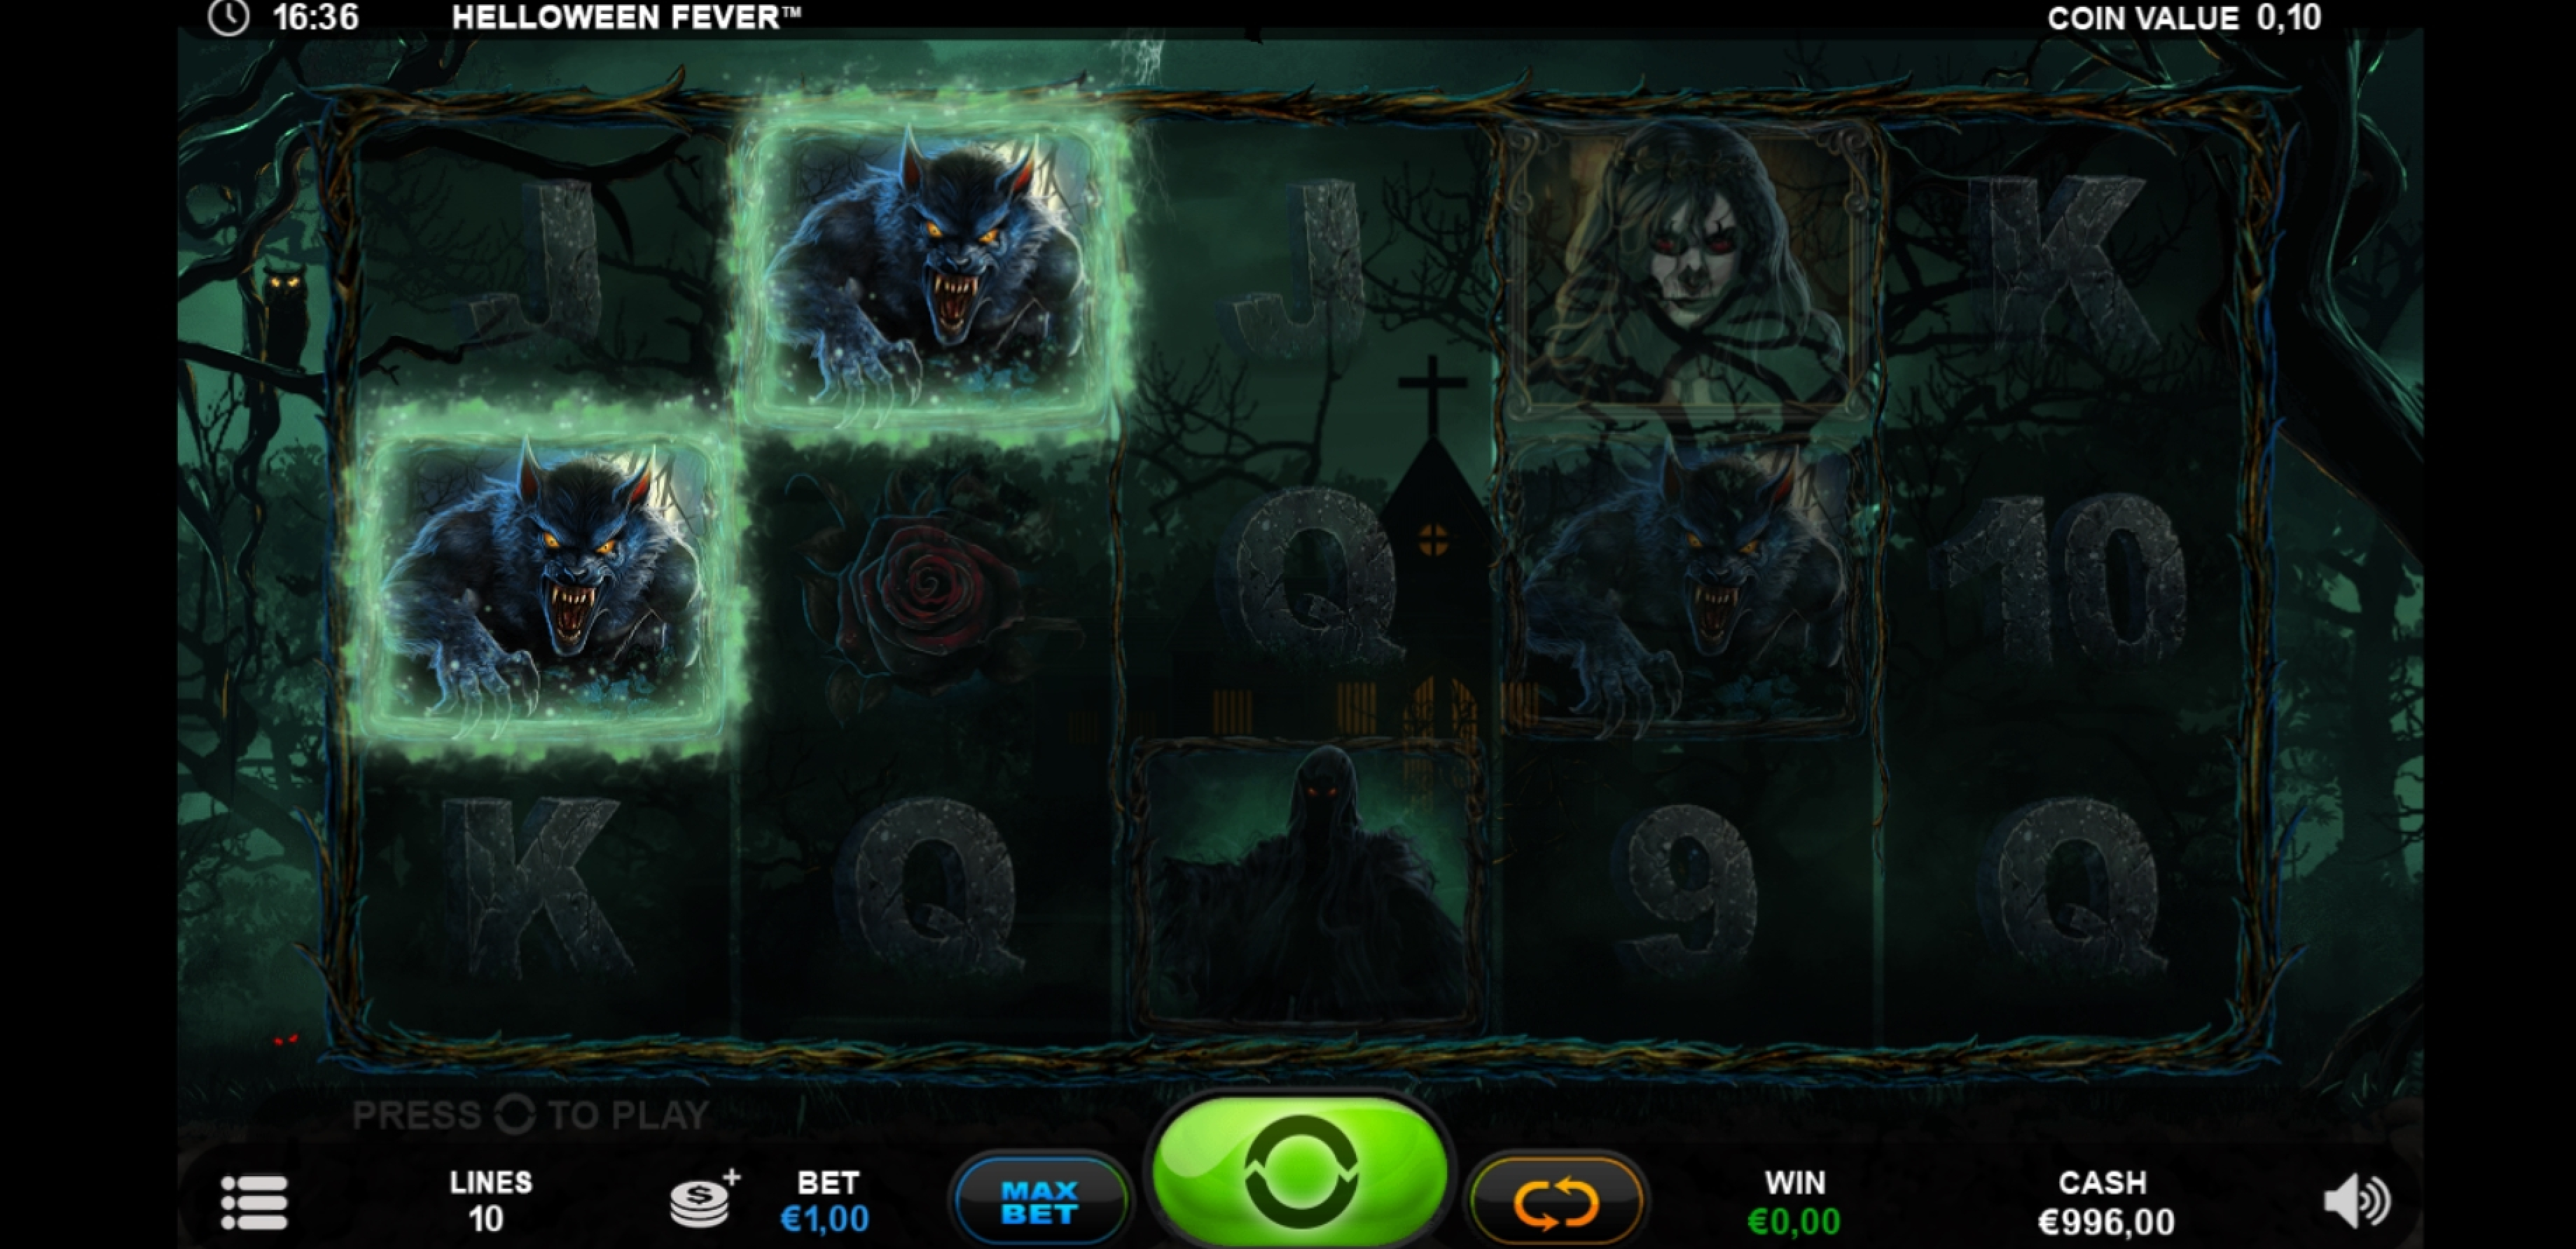 Win Money in Helloween Fever Free Slot Game by Plank Gaming